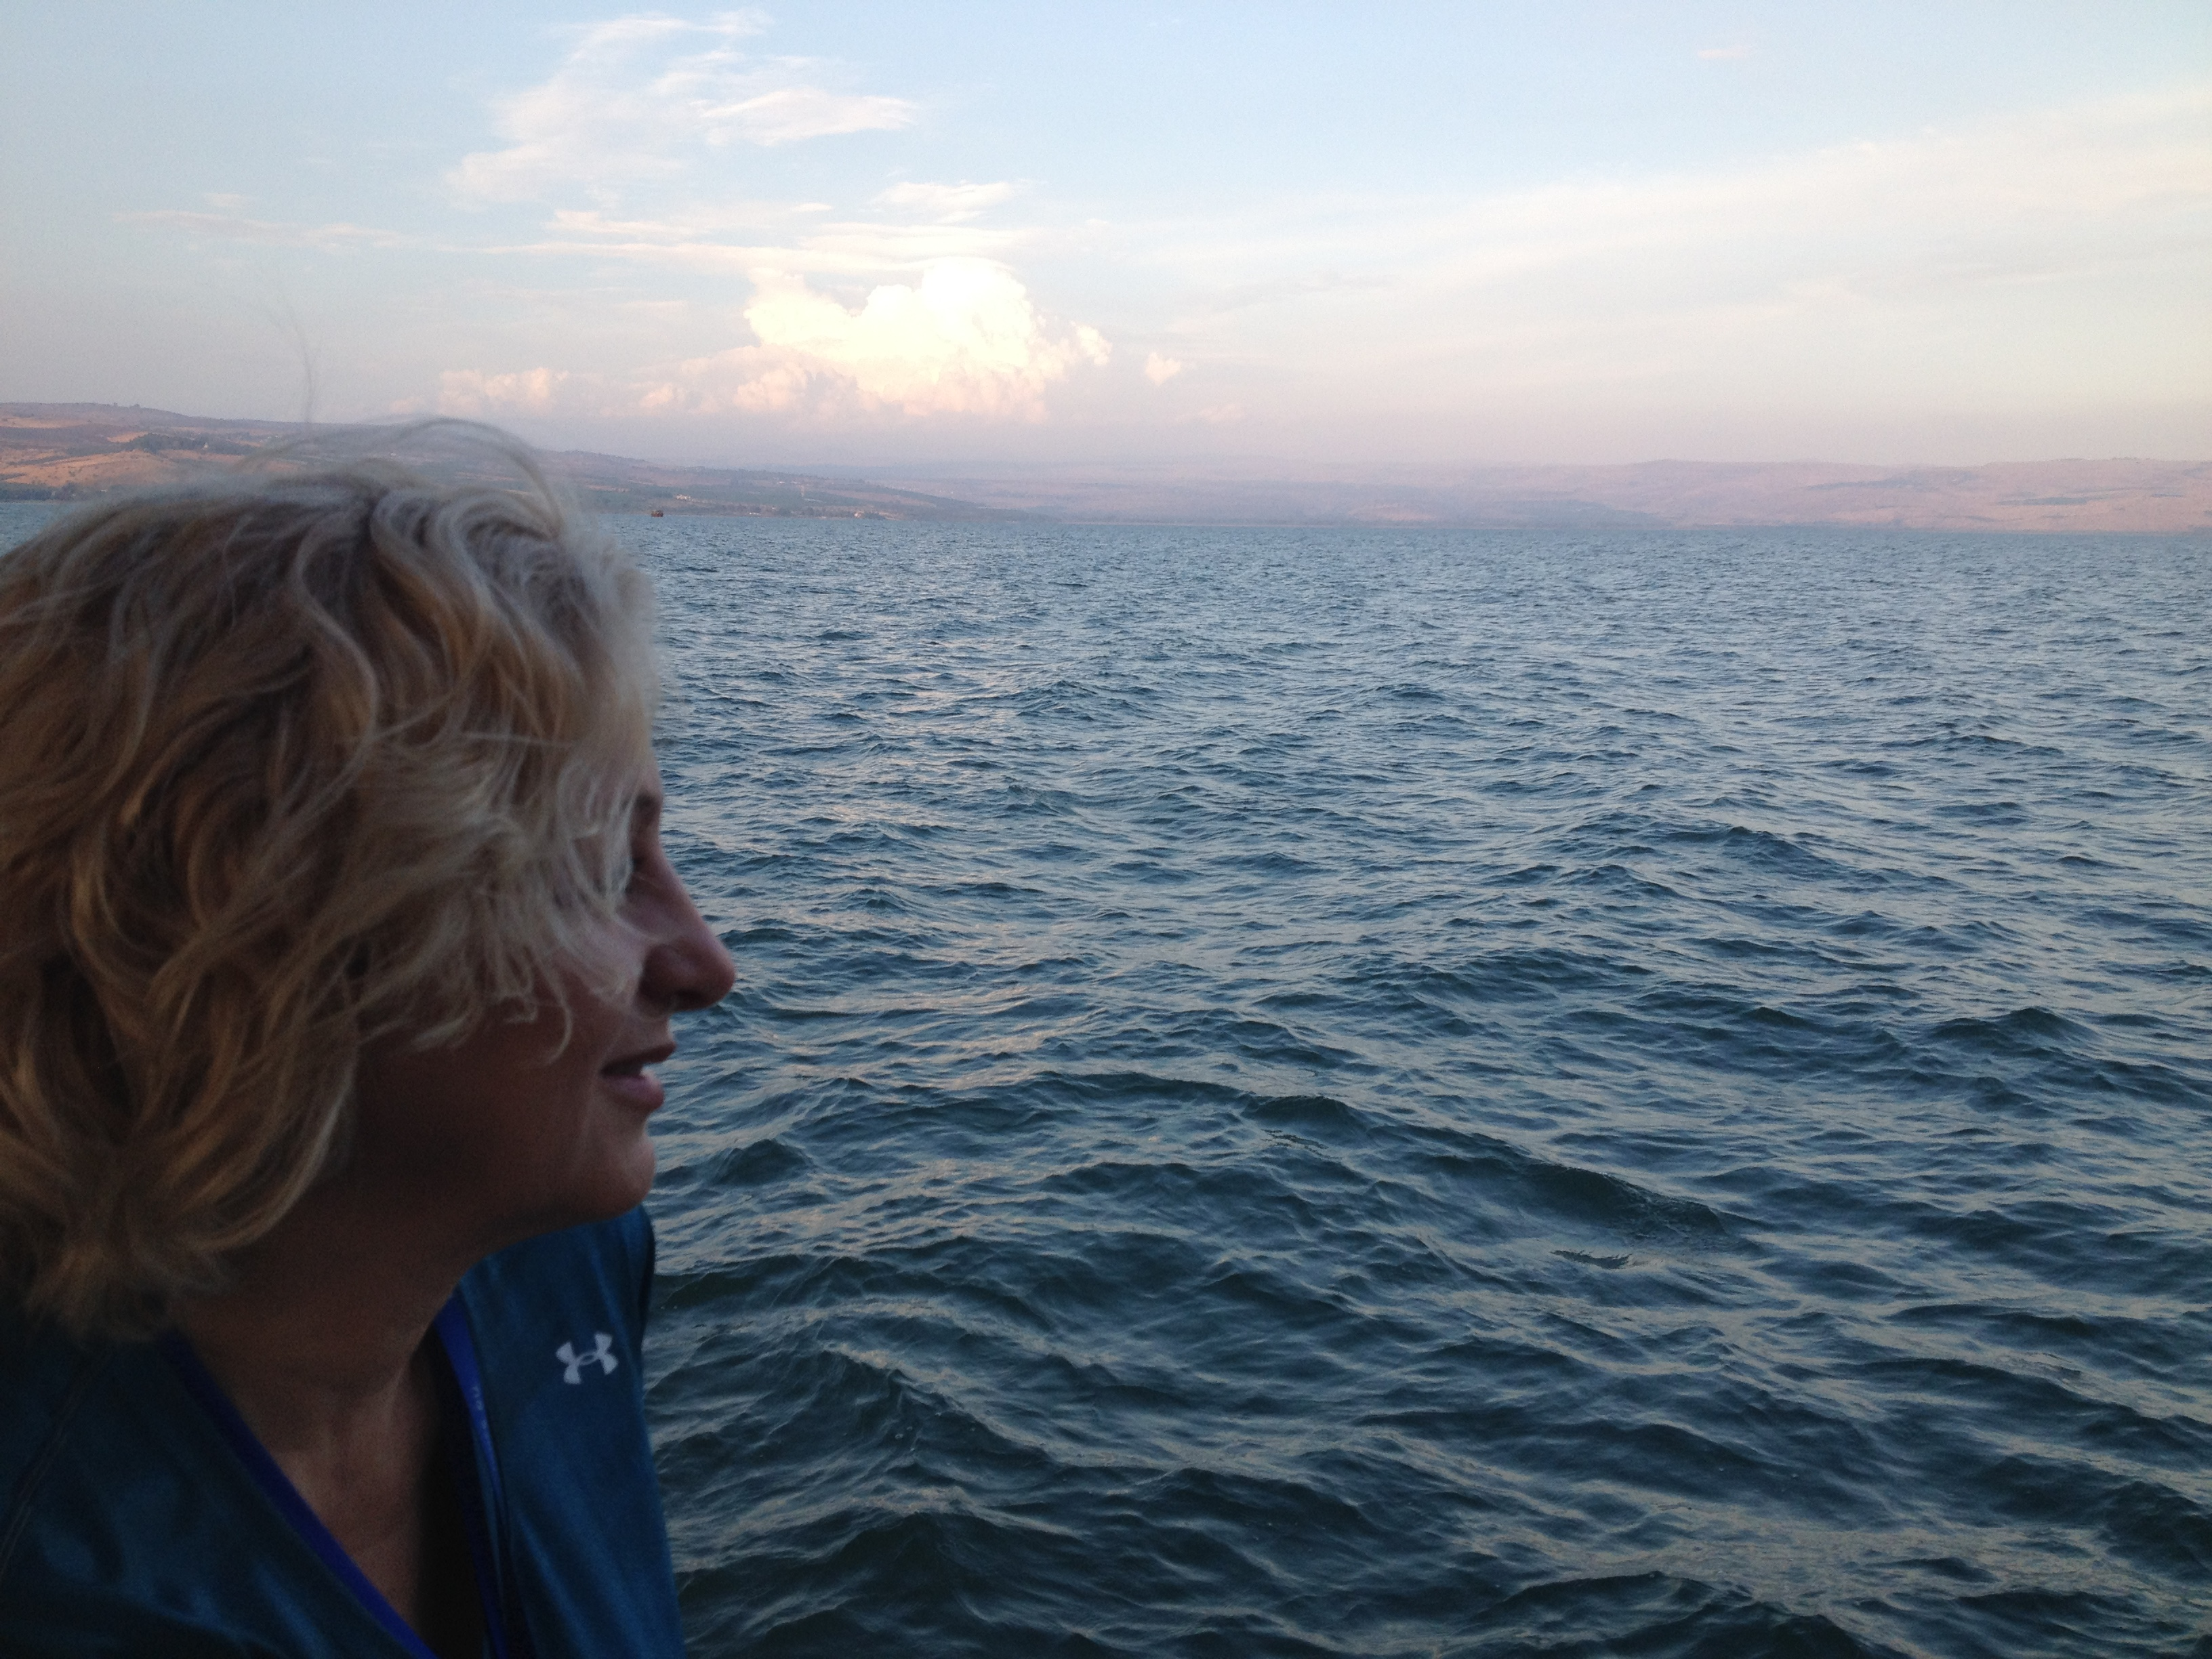 Peaches on the Sea of Galilee